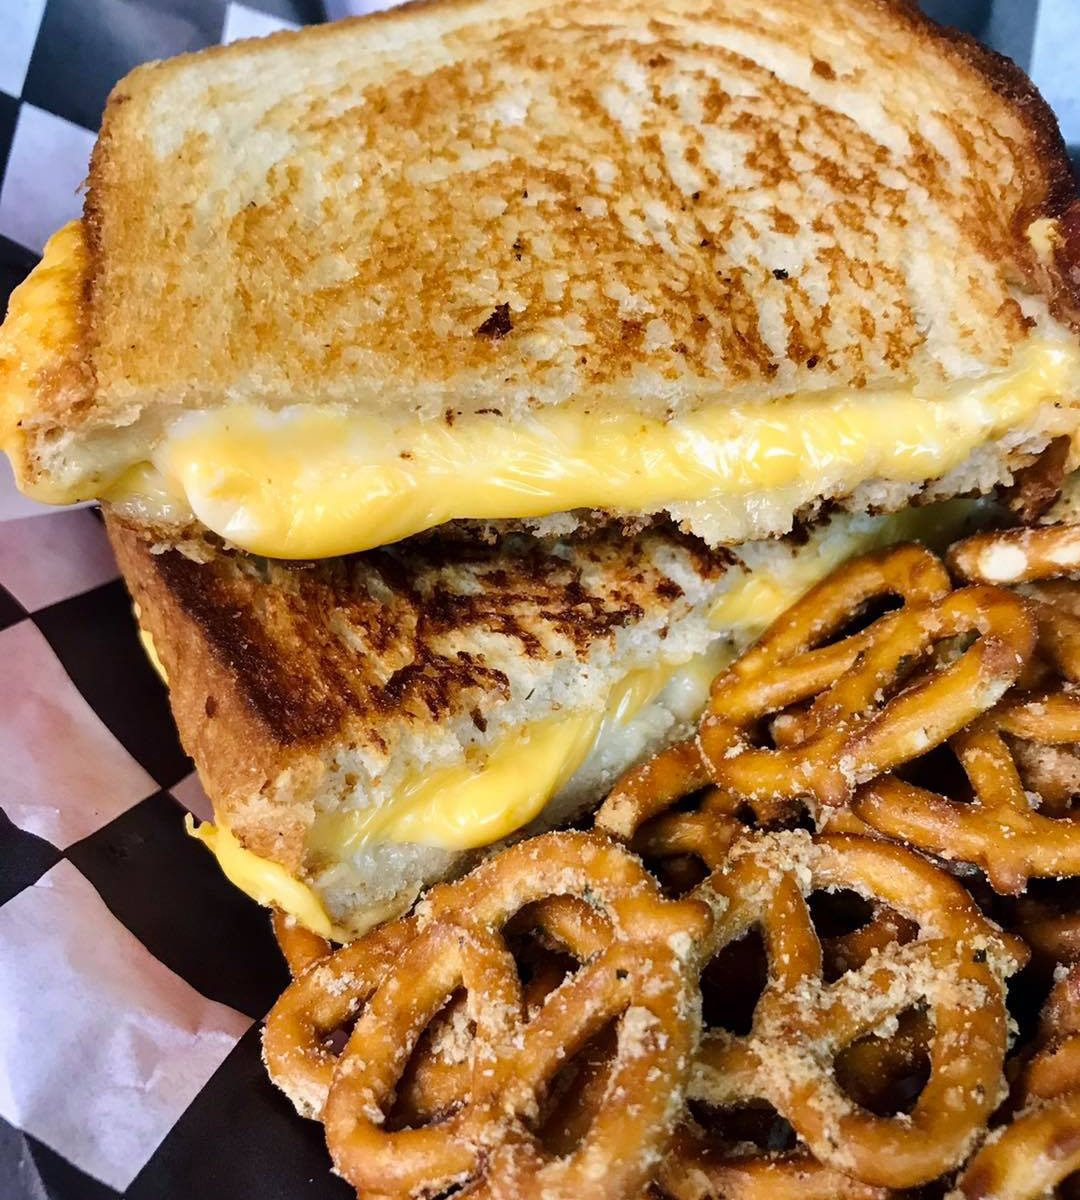 grilled cheese food at battlehops brewing katy tx board game cafe brewpub